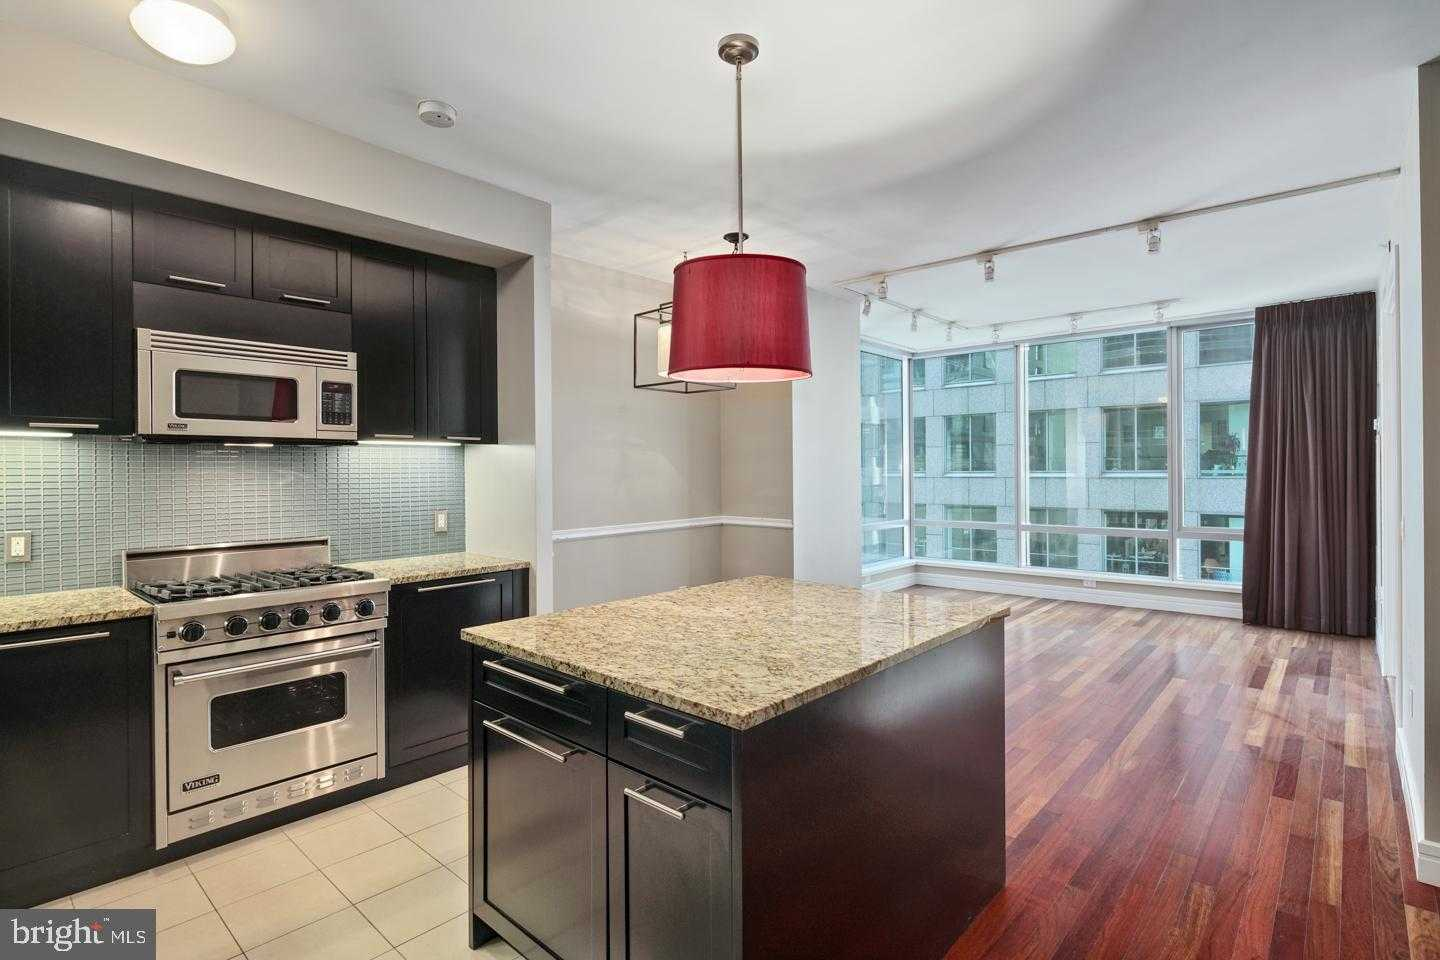 $550,000 - 1Br/2Ba -  for Sale in Avenue Of The Arts, Philadelphia